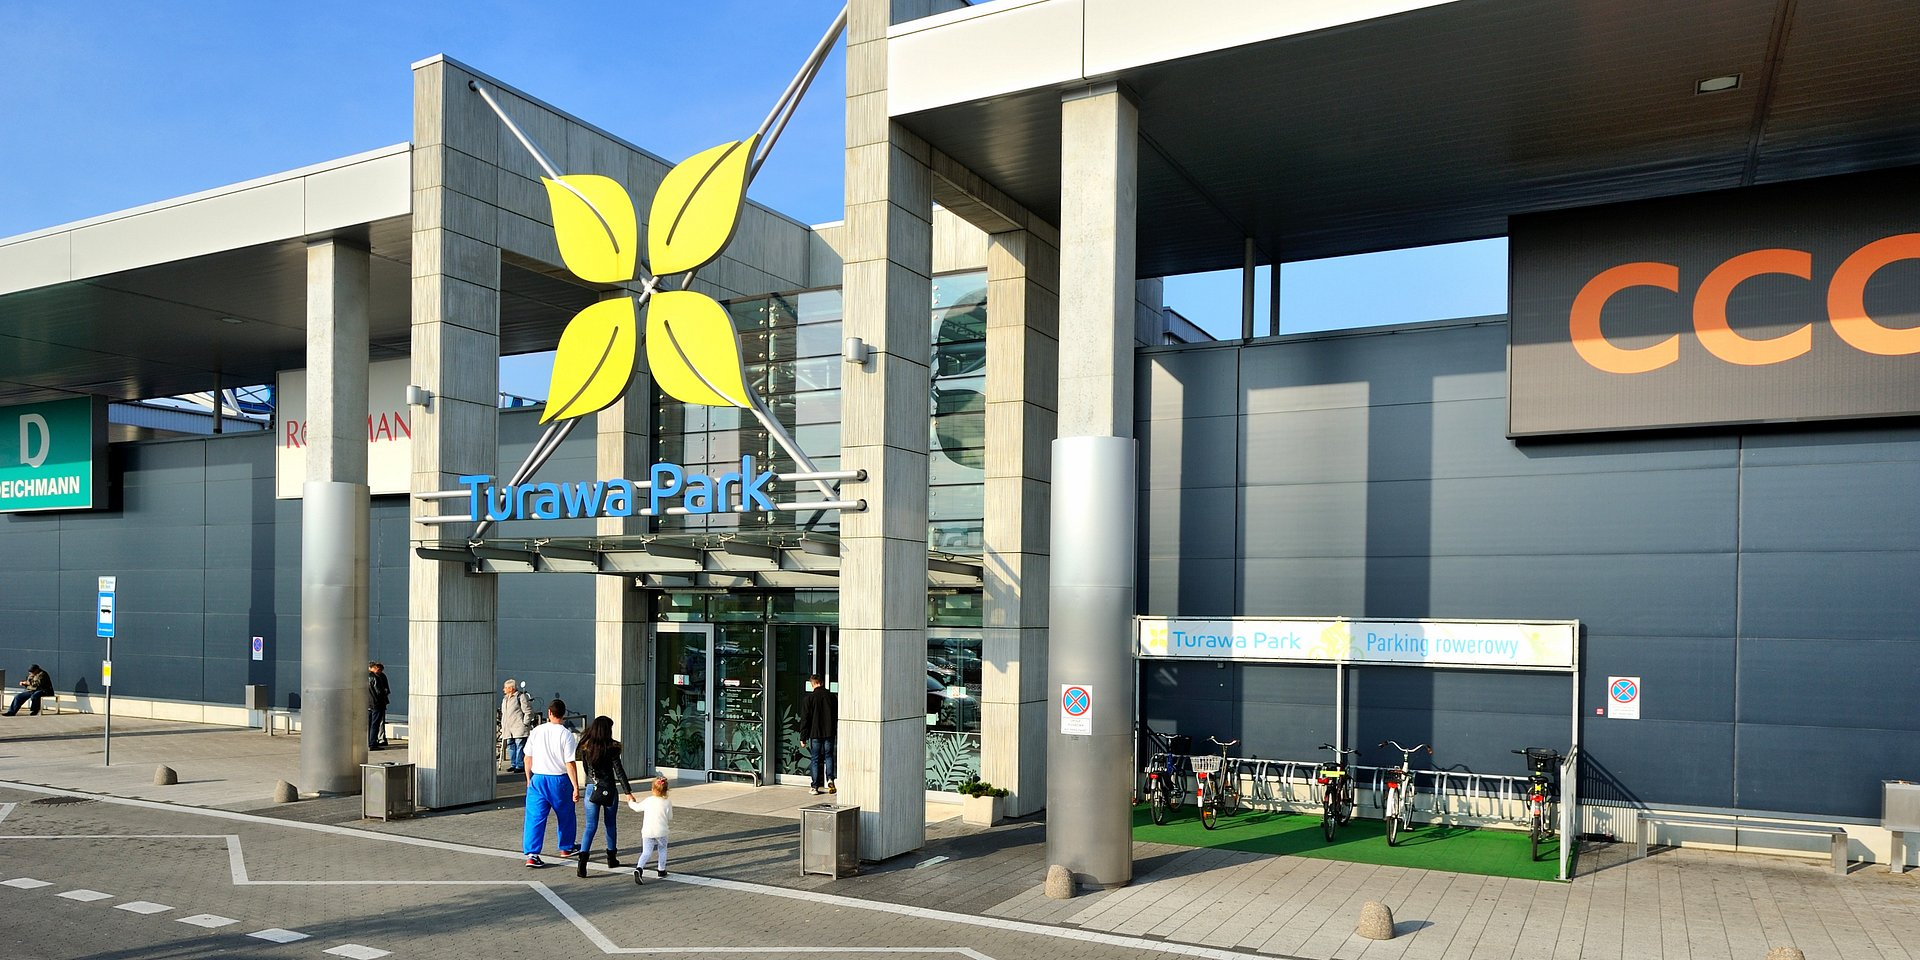 BNP Paribas Real Estate Poland leased over 7,000 sqm of space in Turawa Park